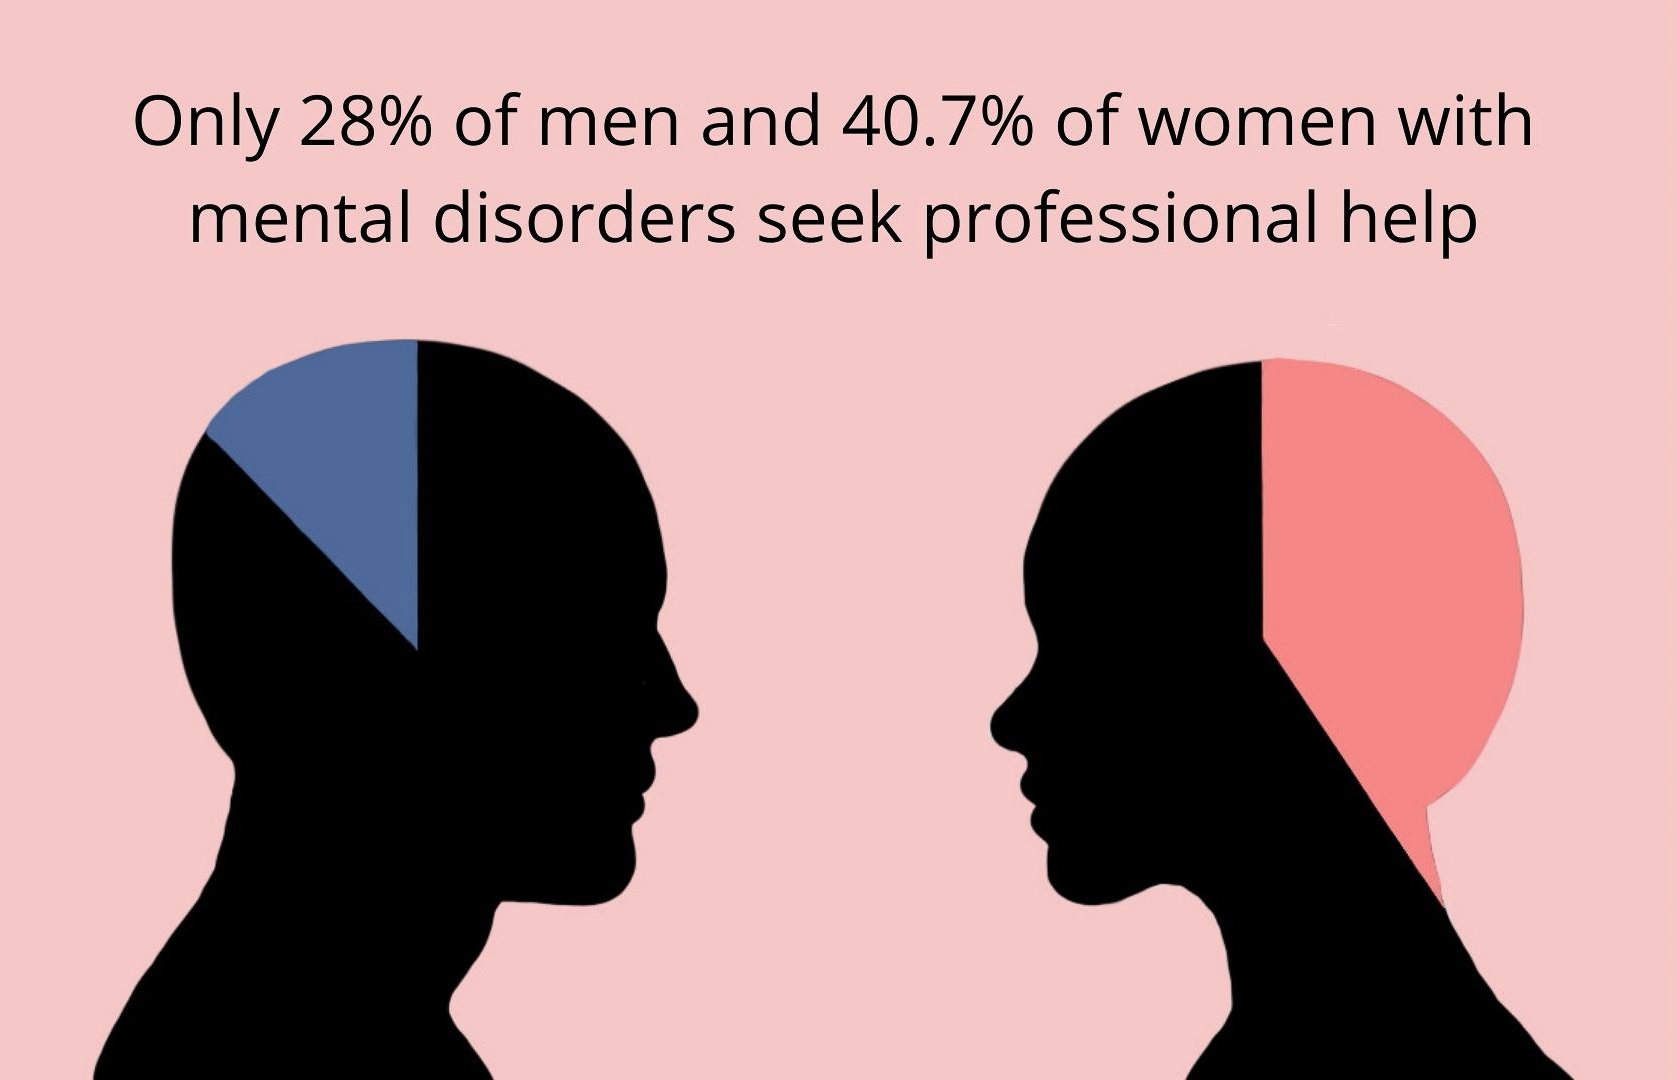 Only 28% of men and 40.7% of women with mental disorders seek professional help